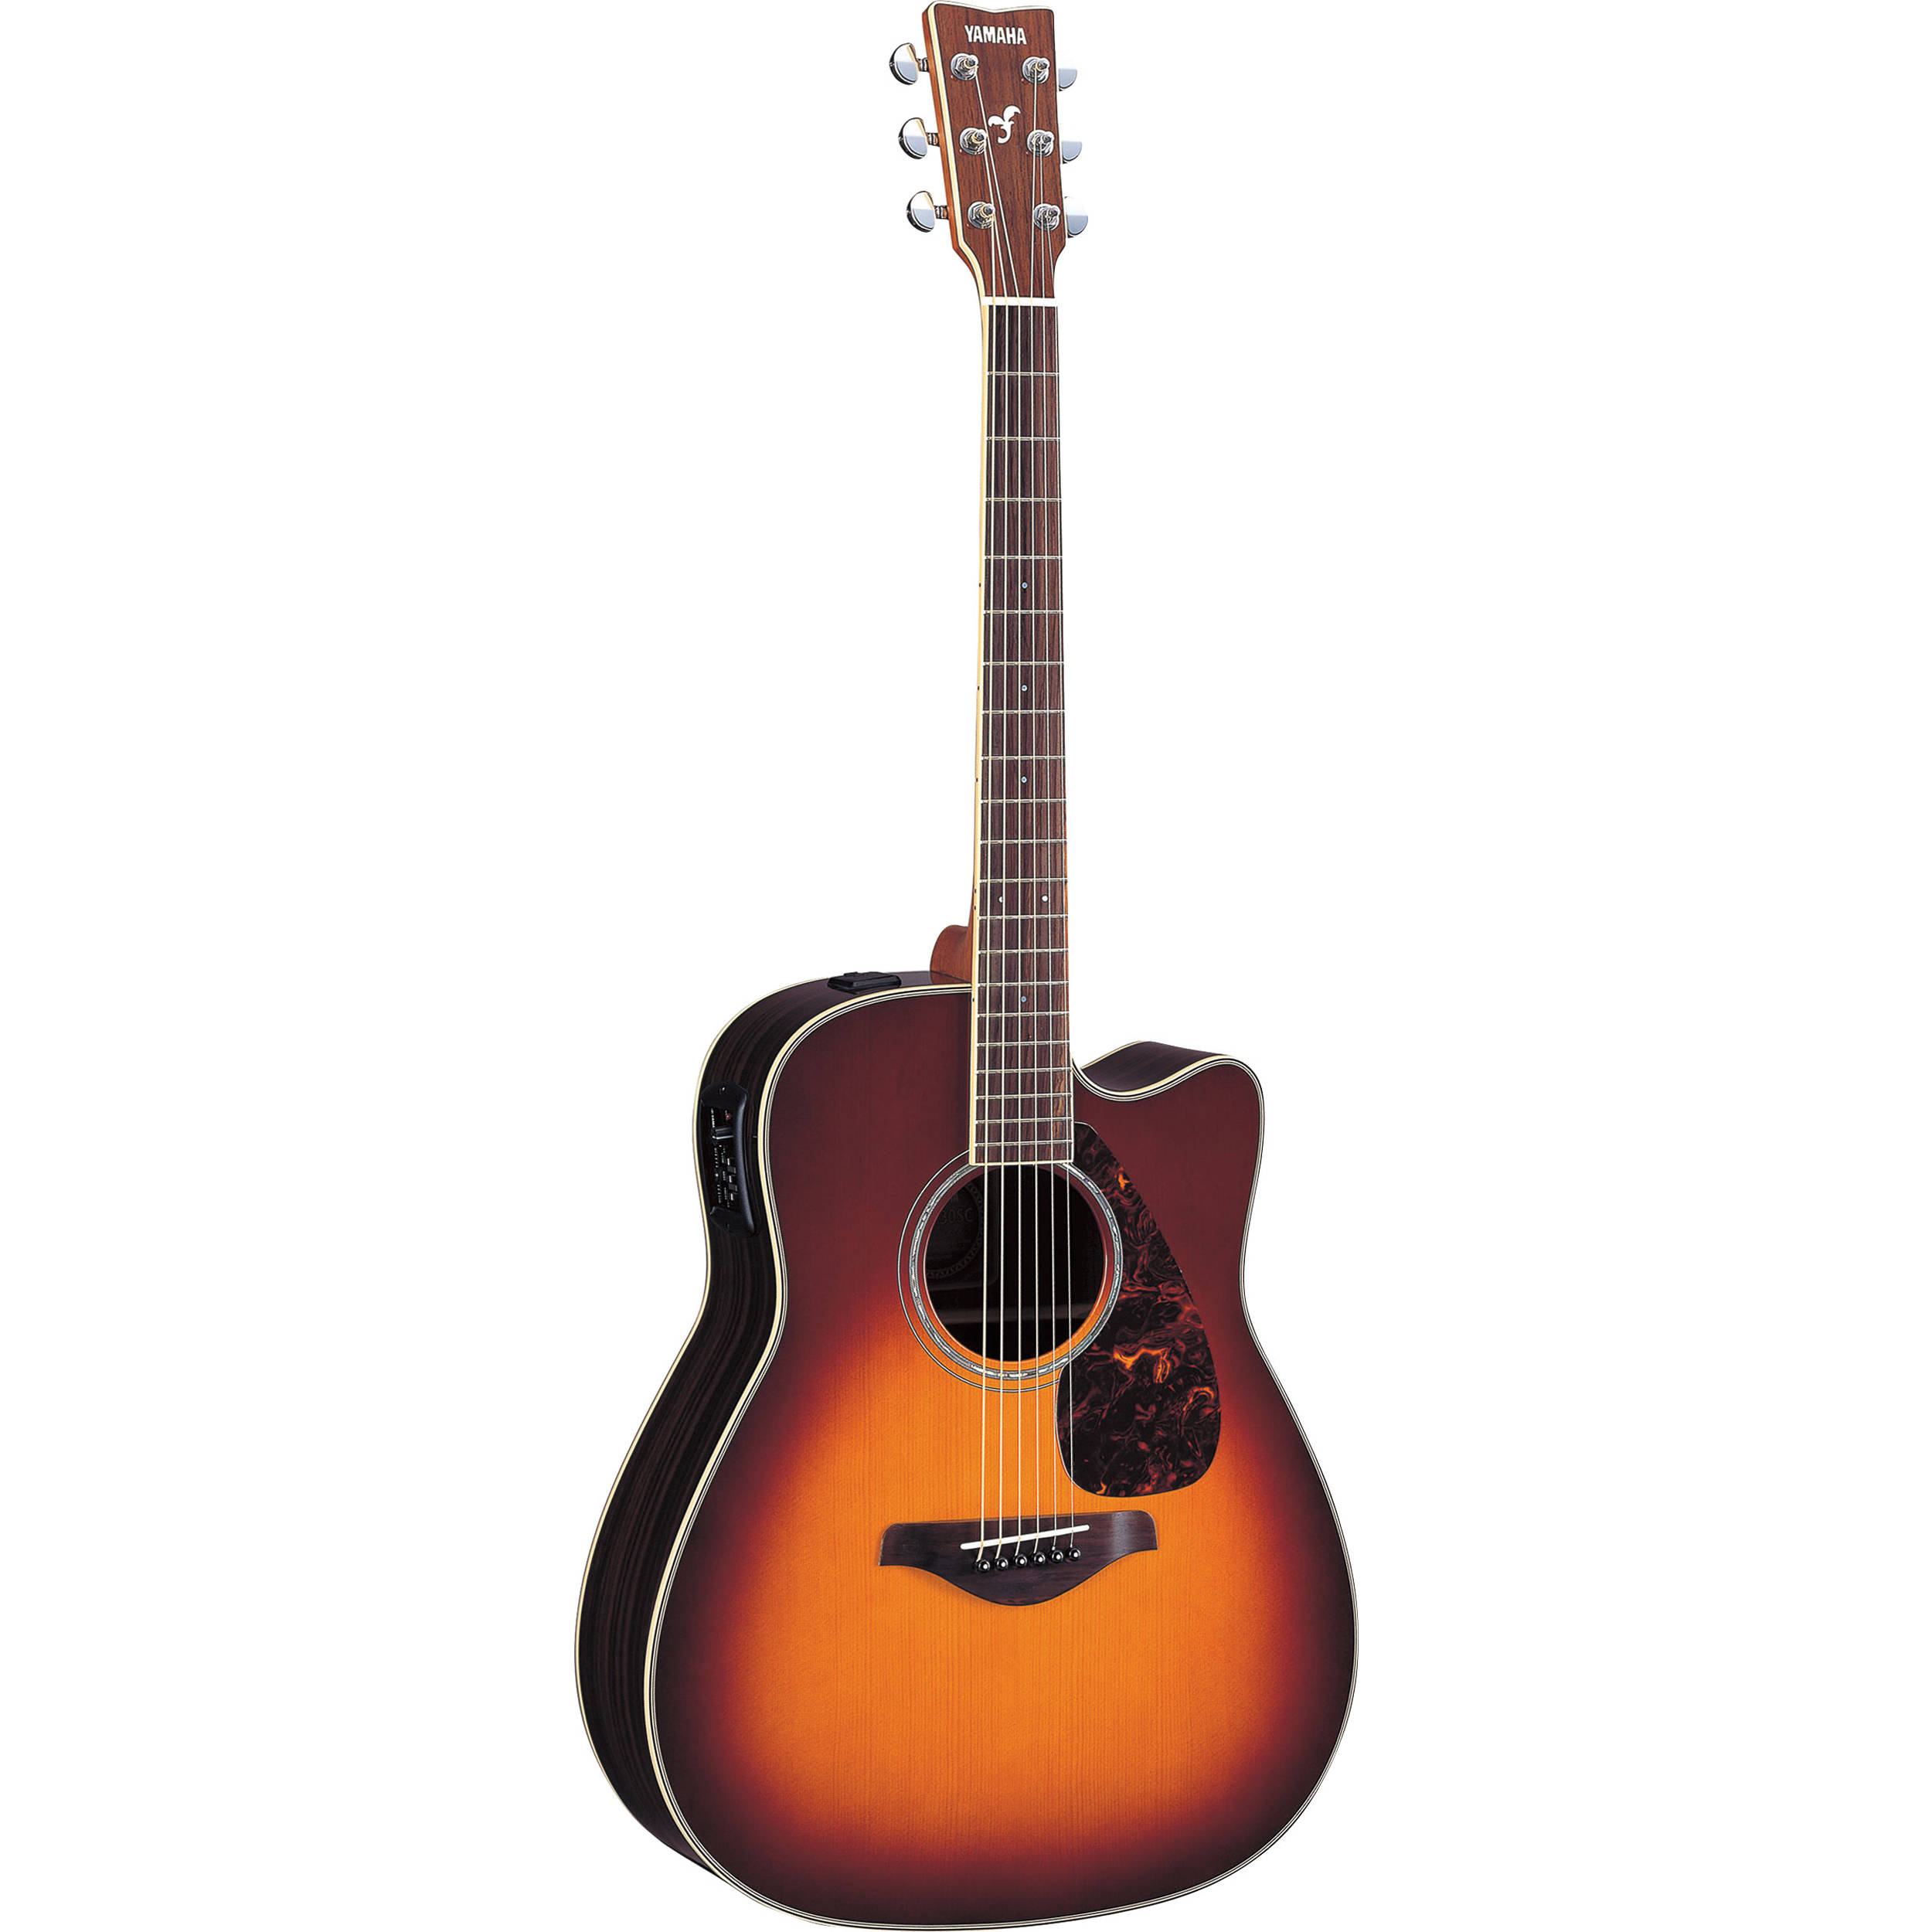 yamaha fgx730sc acoustic electric guitar fgx730sc bs b h photo. Black Bedroom Furniture Sets. Home Design Ideas